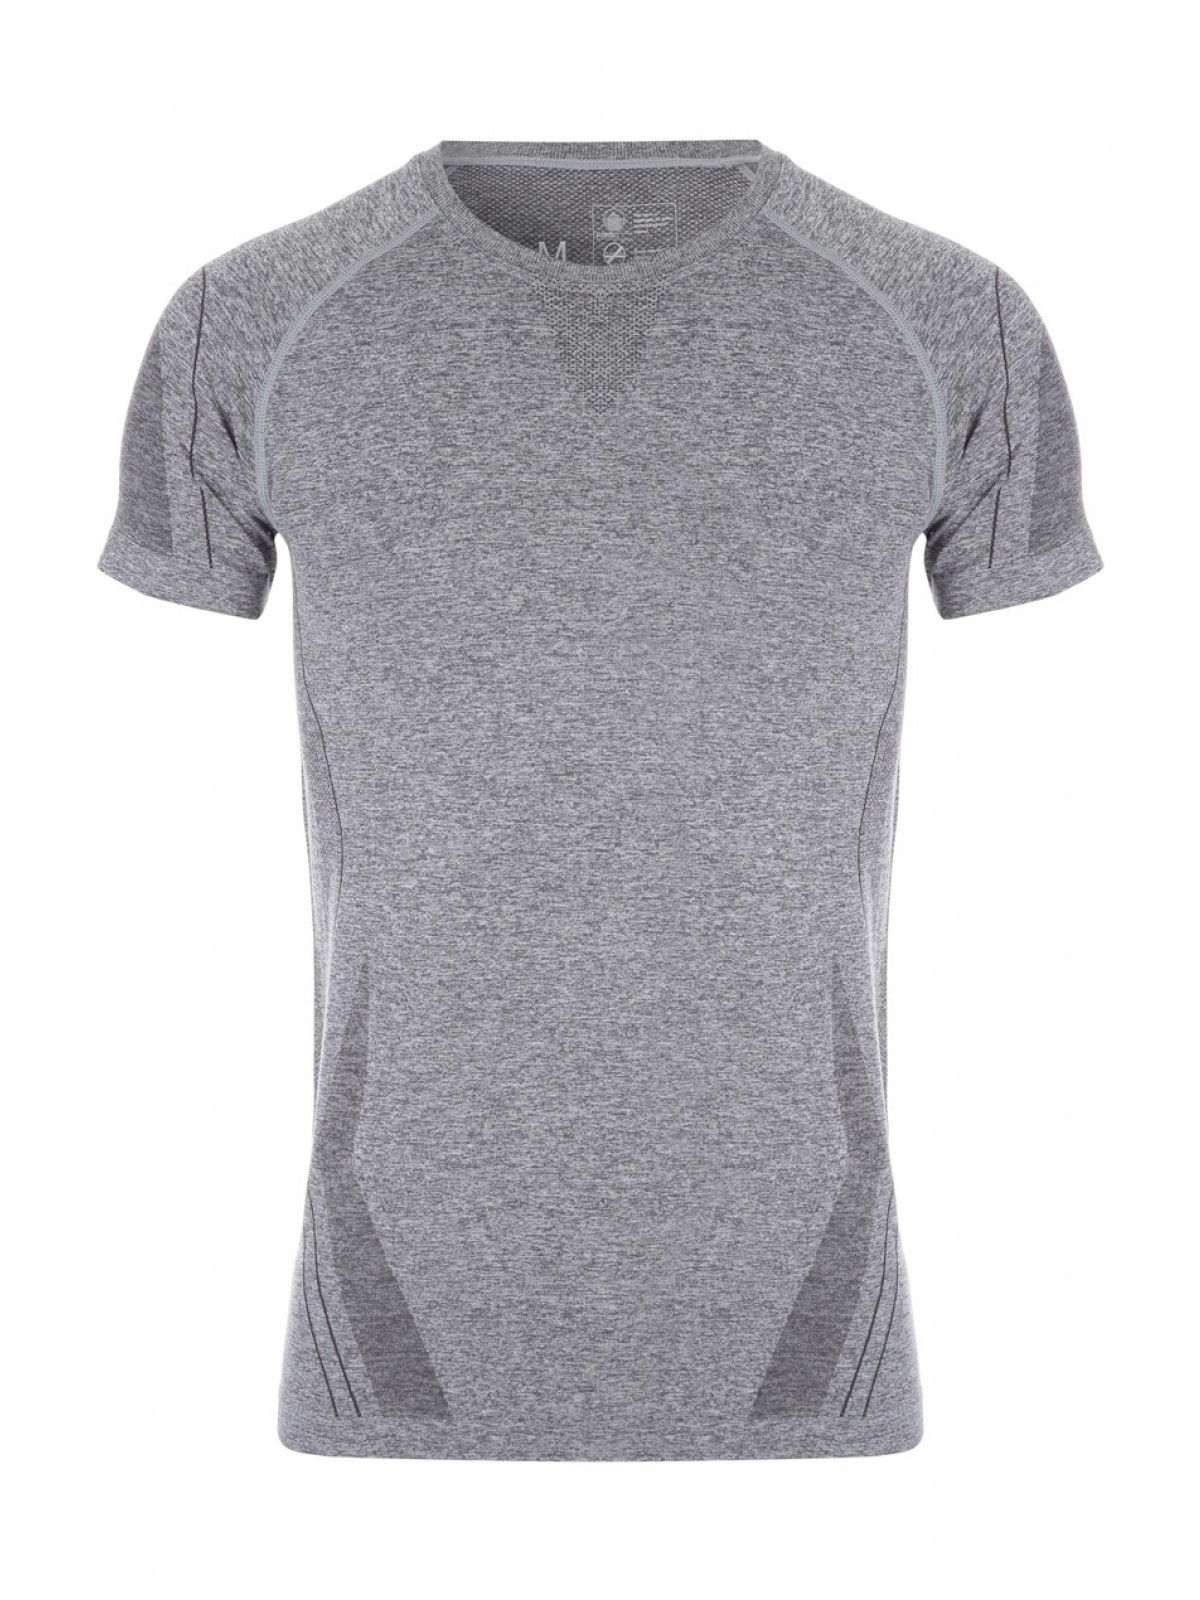 Add this short sleeve, round neck, seamless texture t-shirt to your collection for an updated look on a charcoal t-shirt.